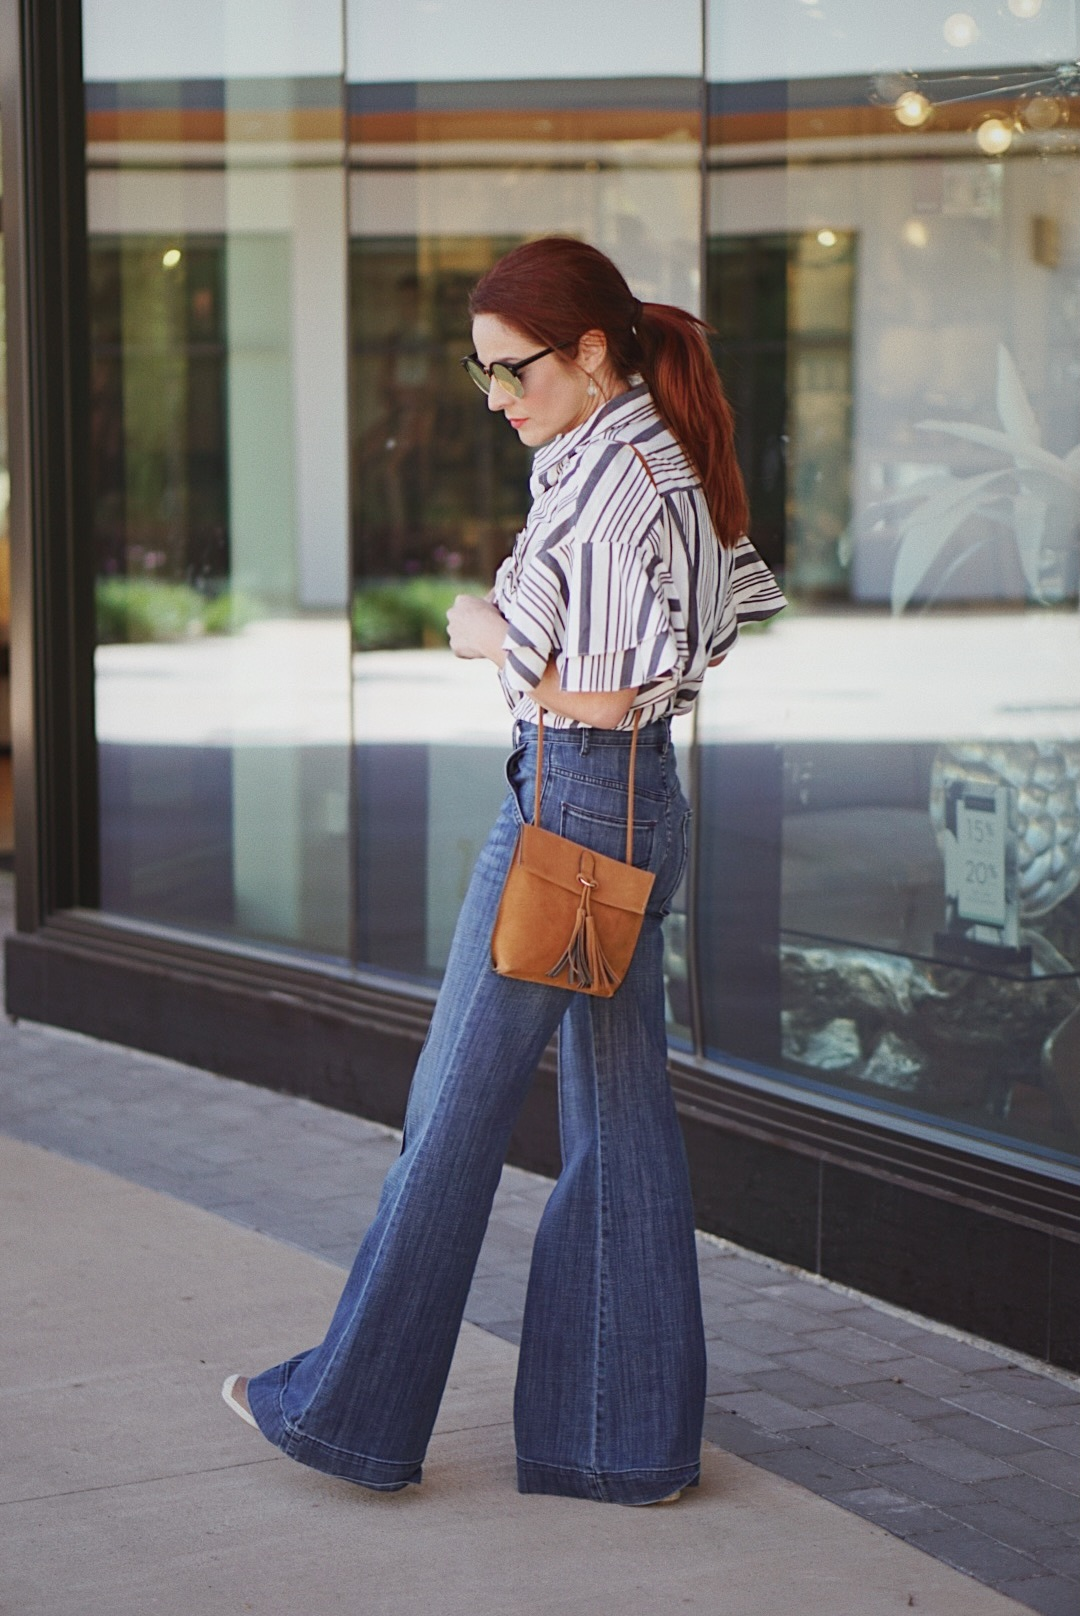 spring fashion, striped tops, flutter sleeves, red hair ideas, flare jean inspiration